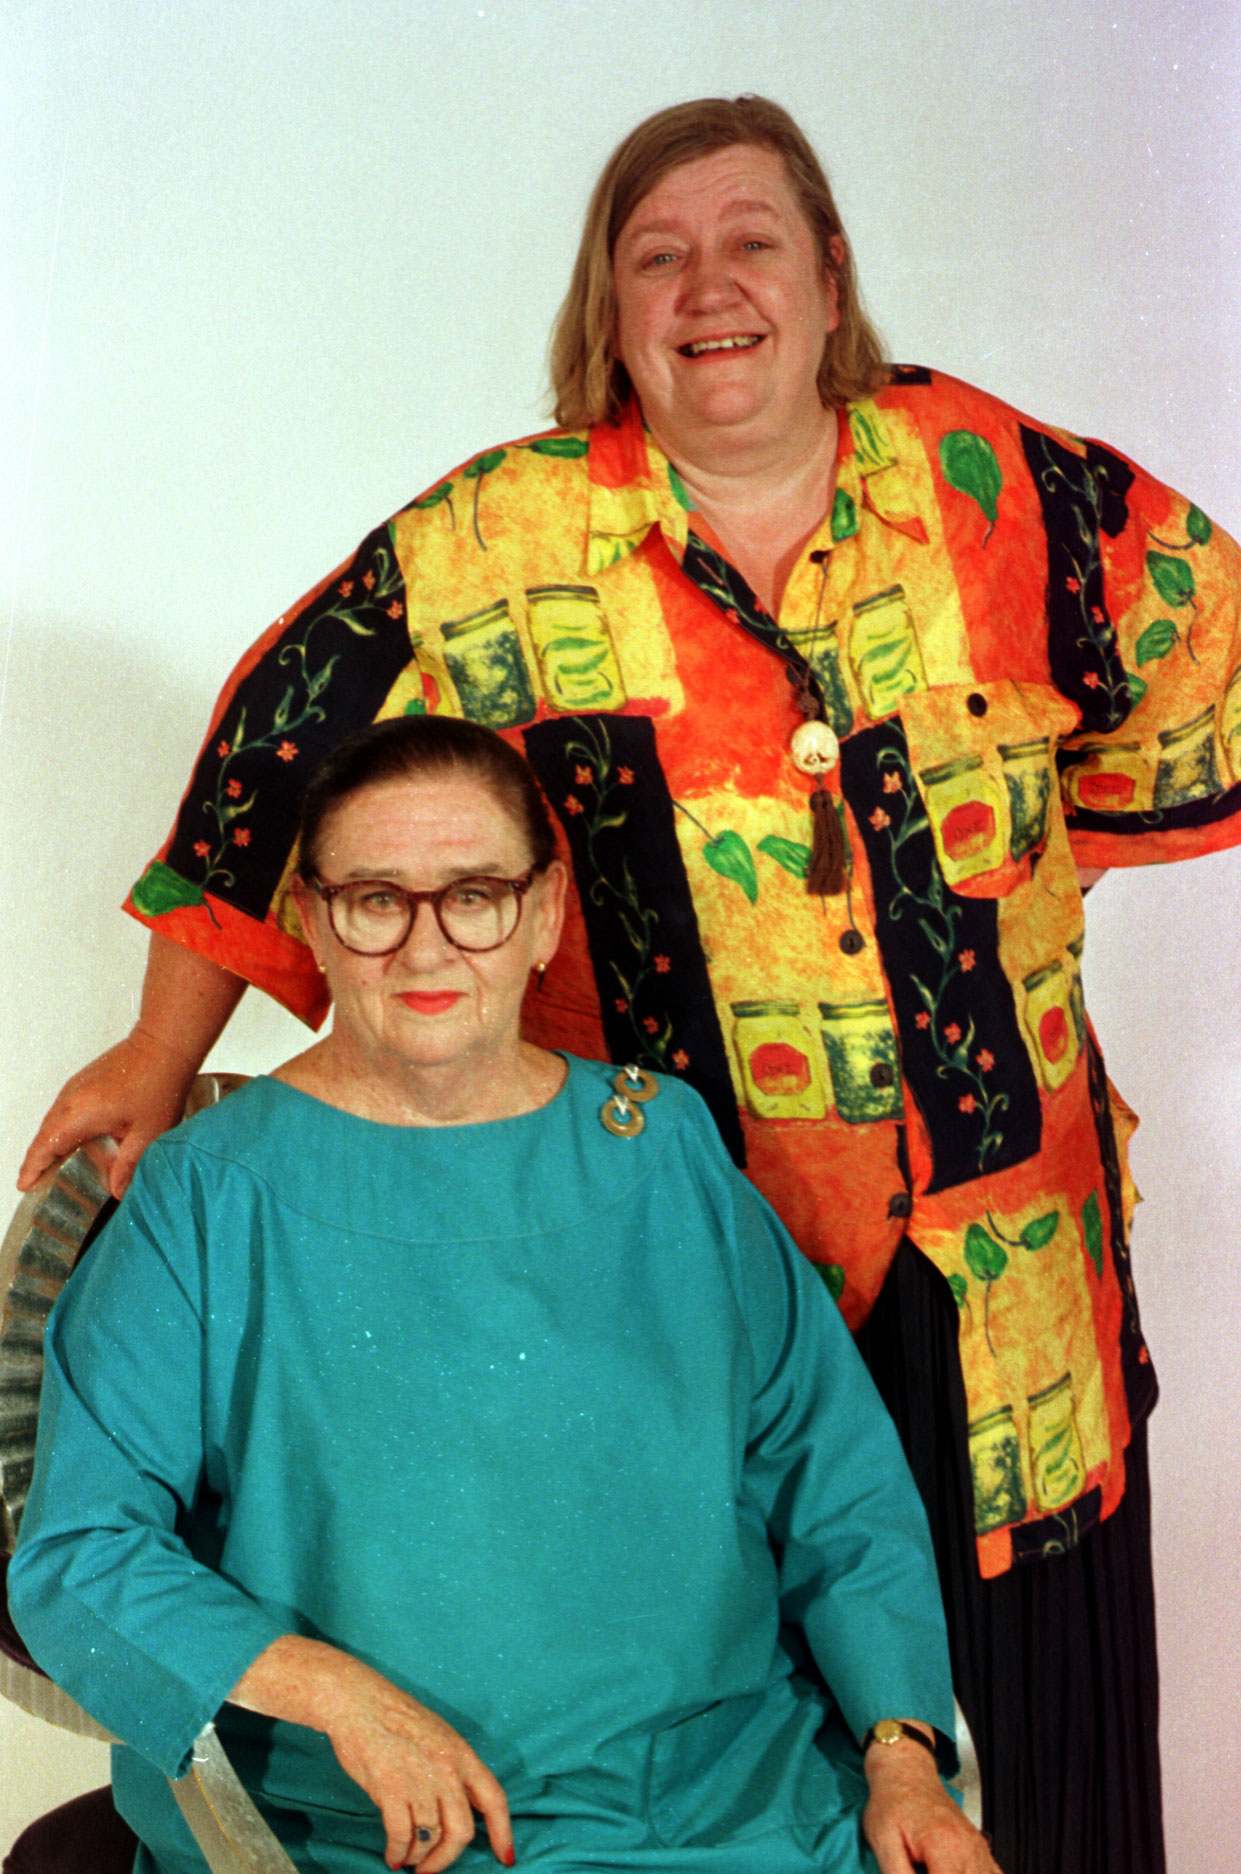 Stars of the BBC2 series 'Two Fat Ladies' Jennifer Paterson (left) and Clarissa Dickson Wright. Photo by Ben Curtis/PA Images via Getty Images.